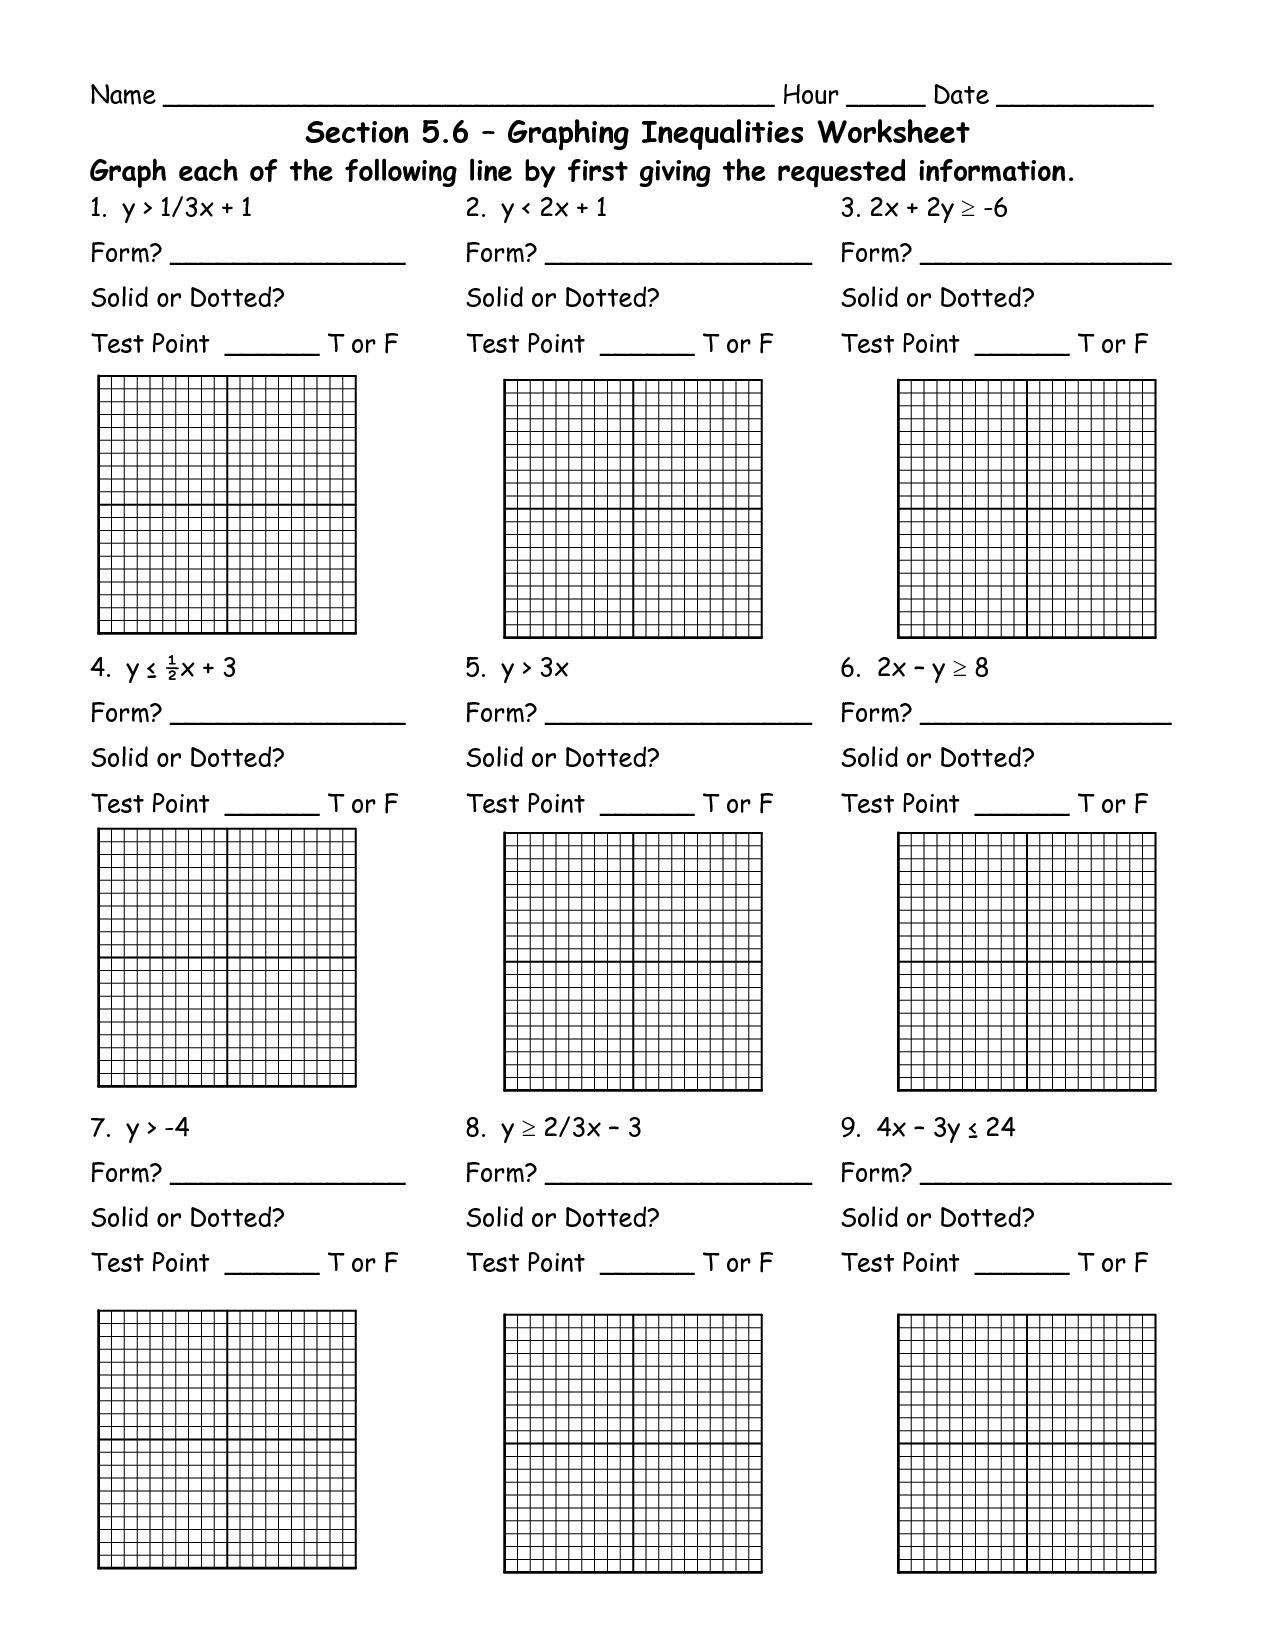 Solutions Inequalities Graphing Worksheet